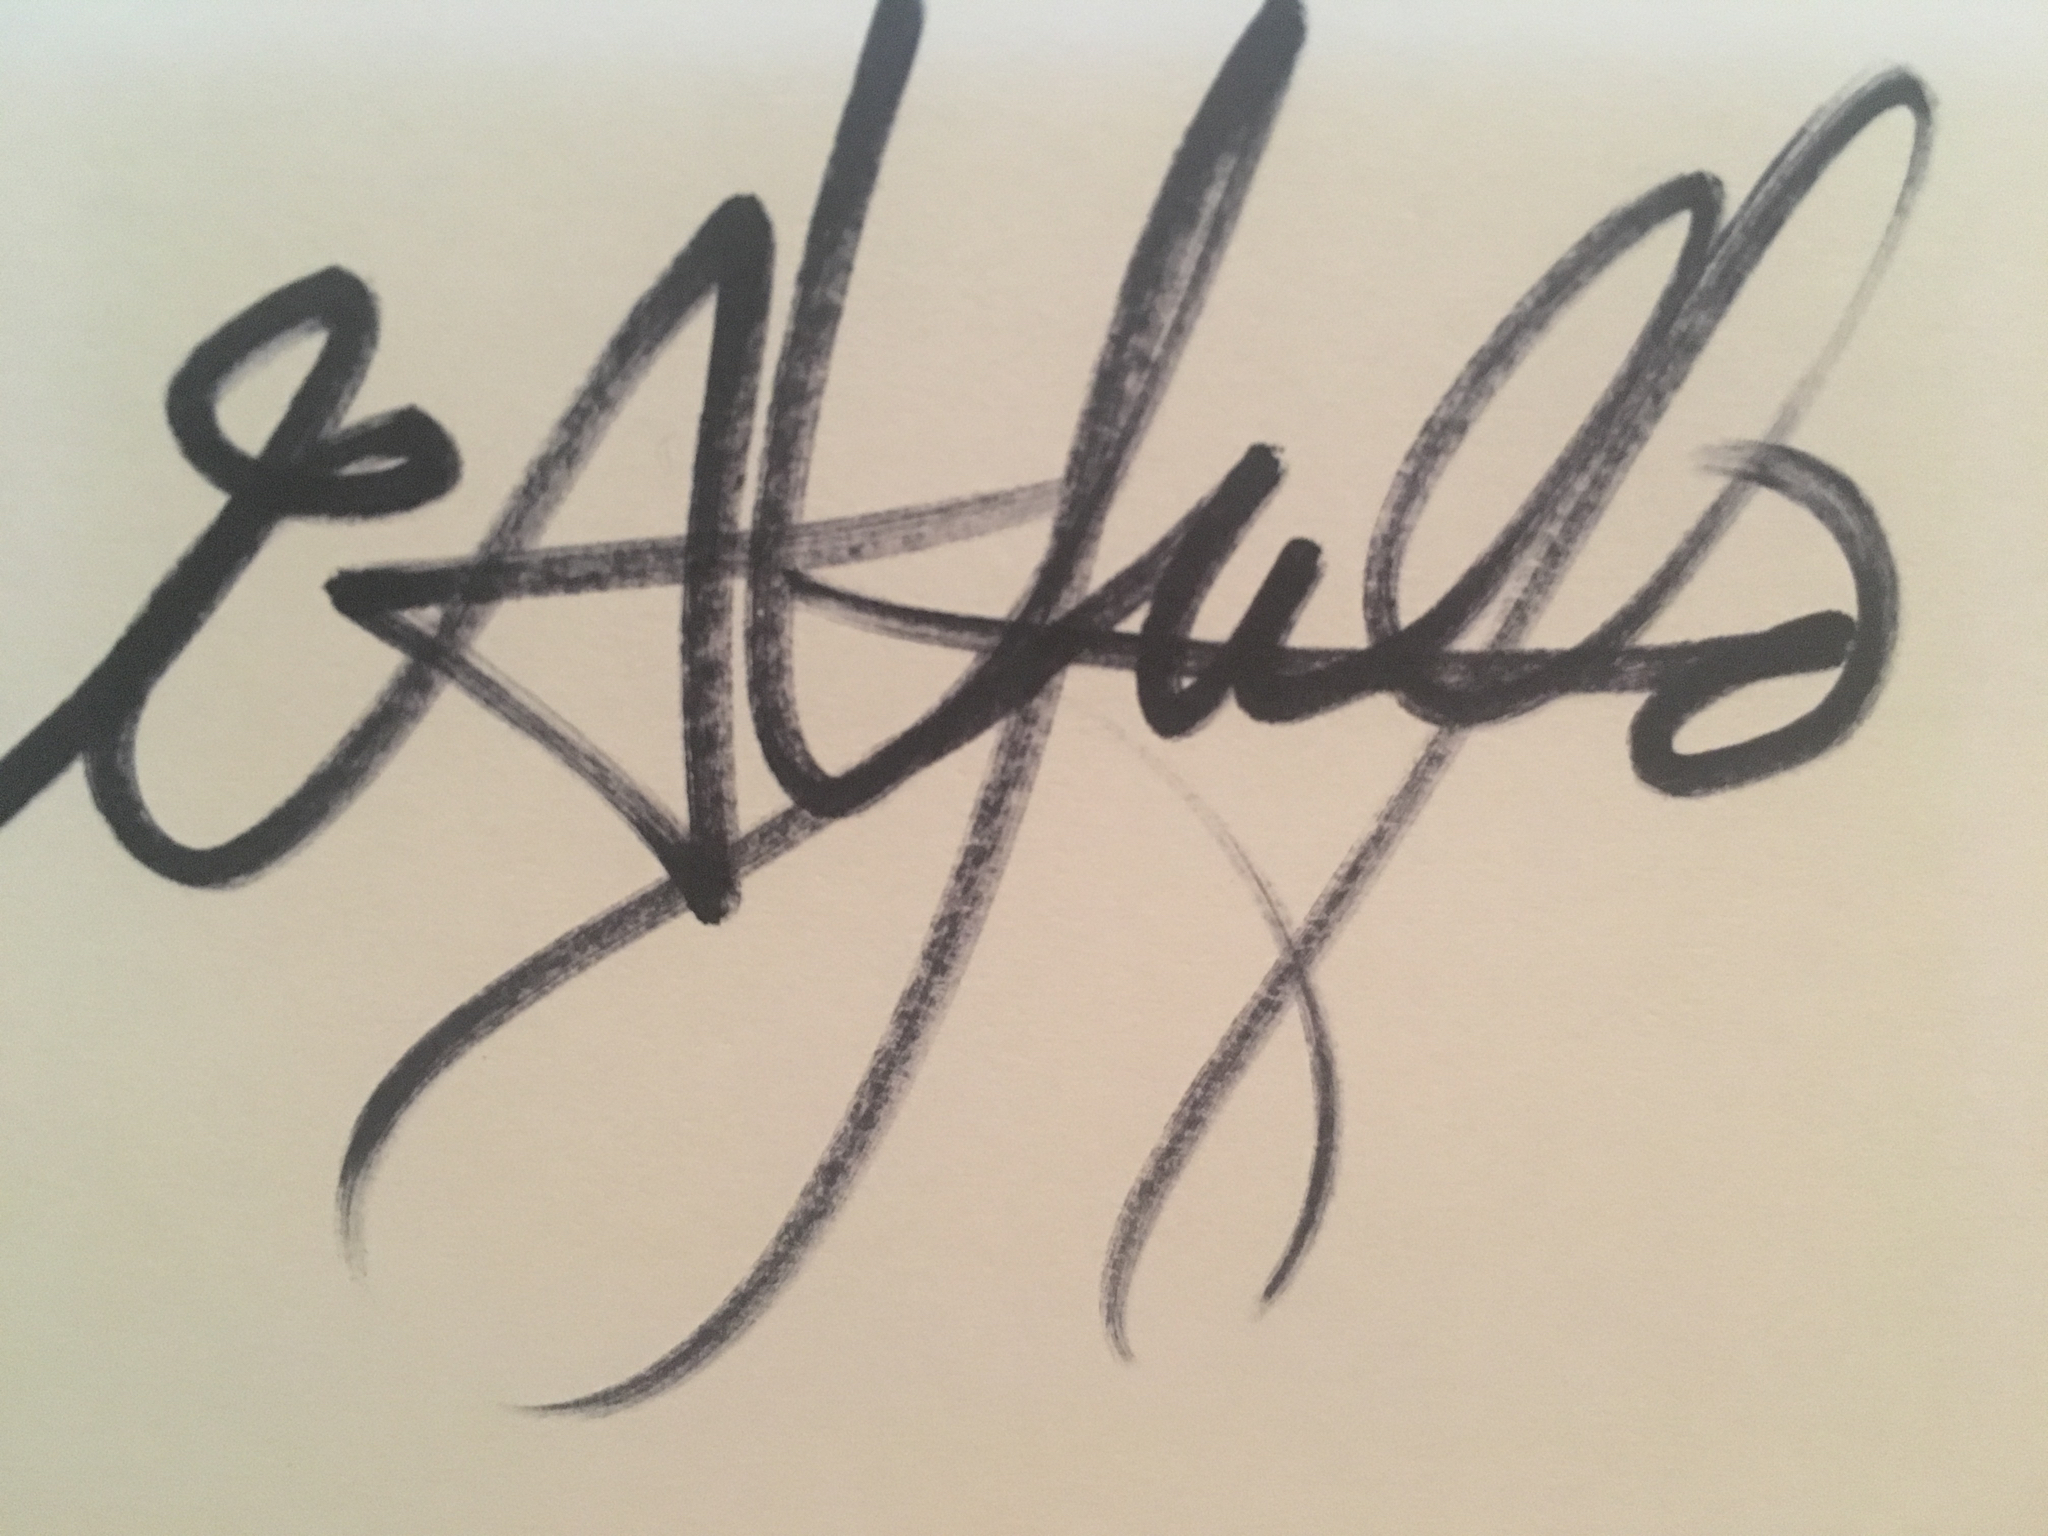 Art.seidenkress's Signature